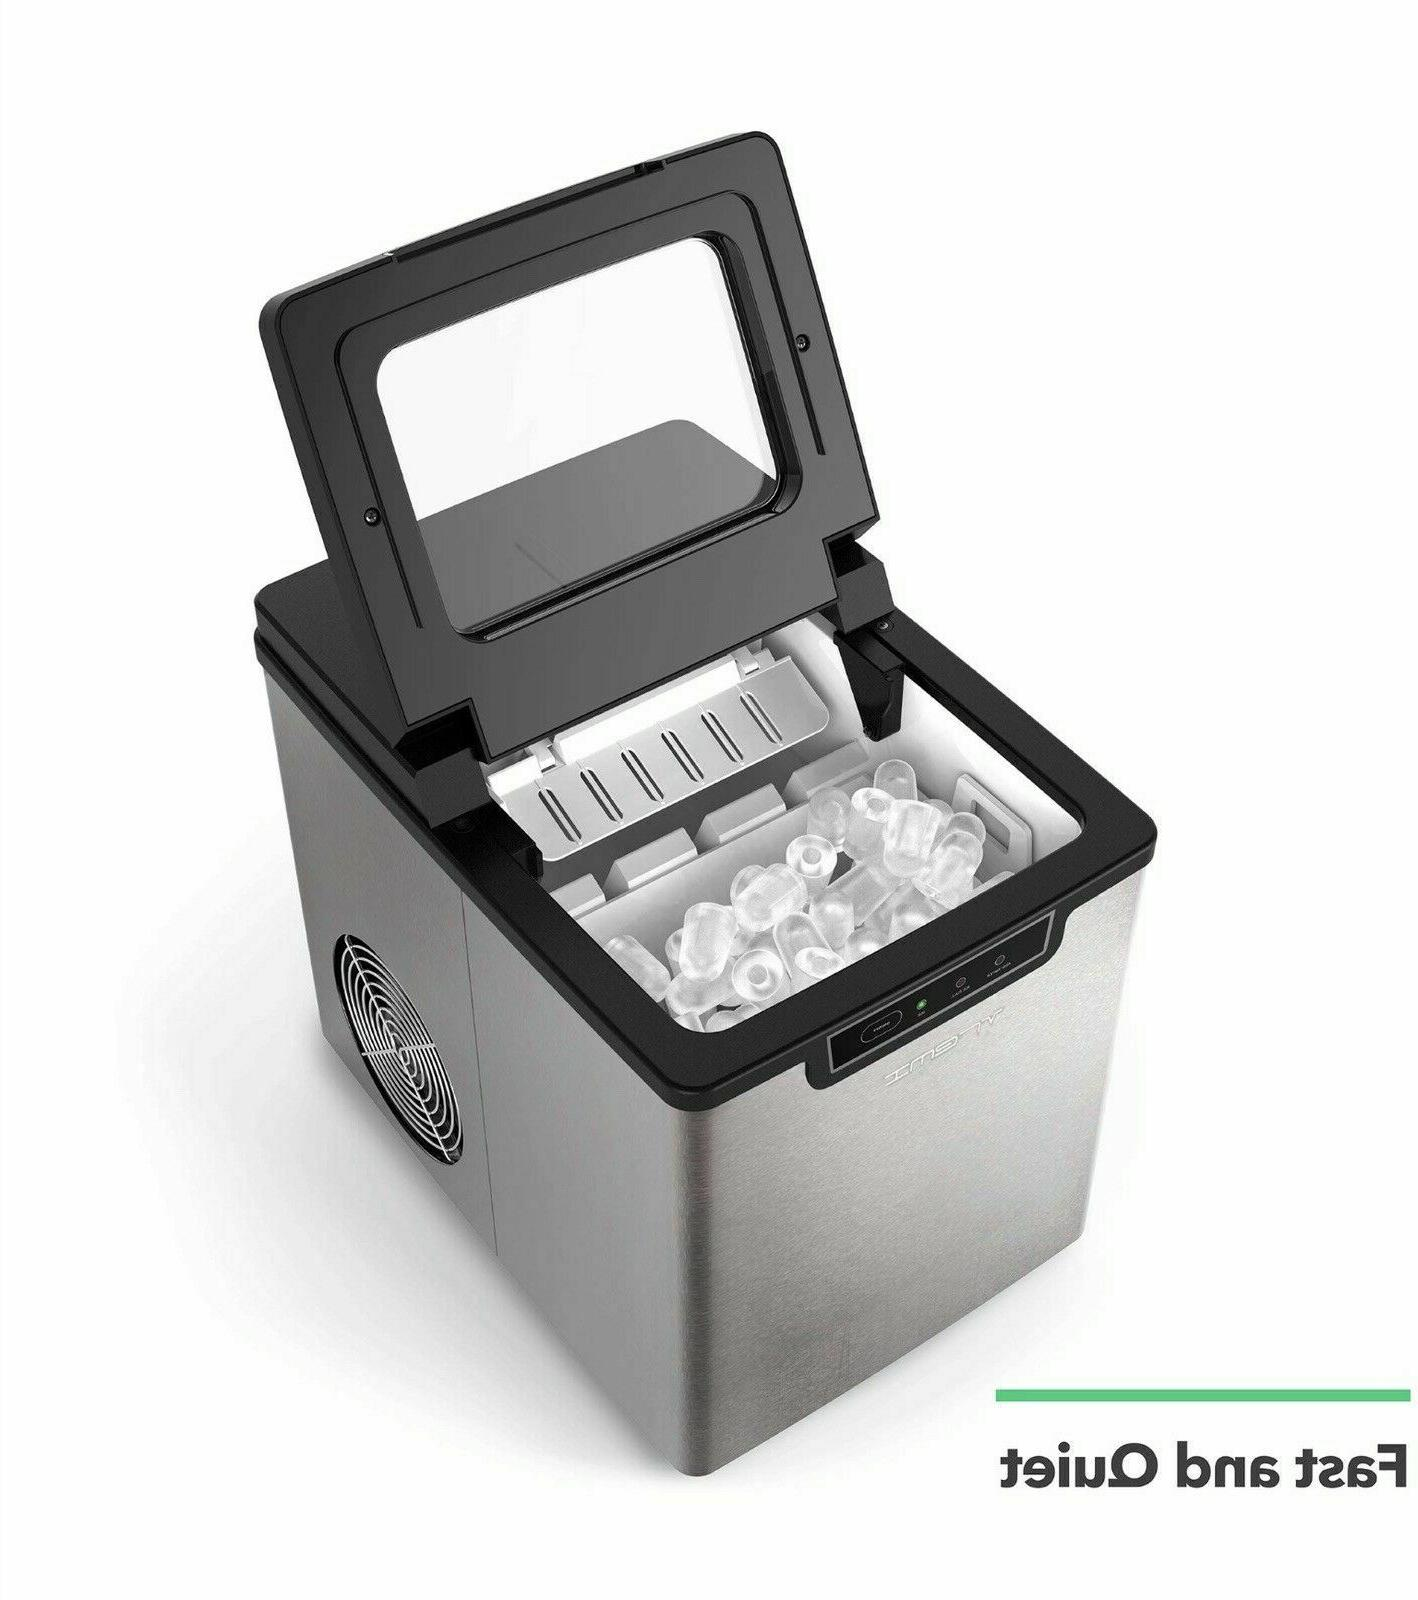 countertop ice maker ice cubes ready in